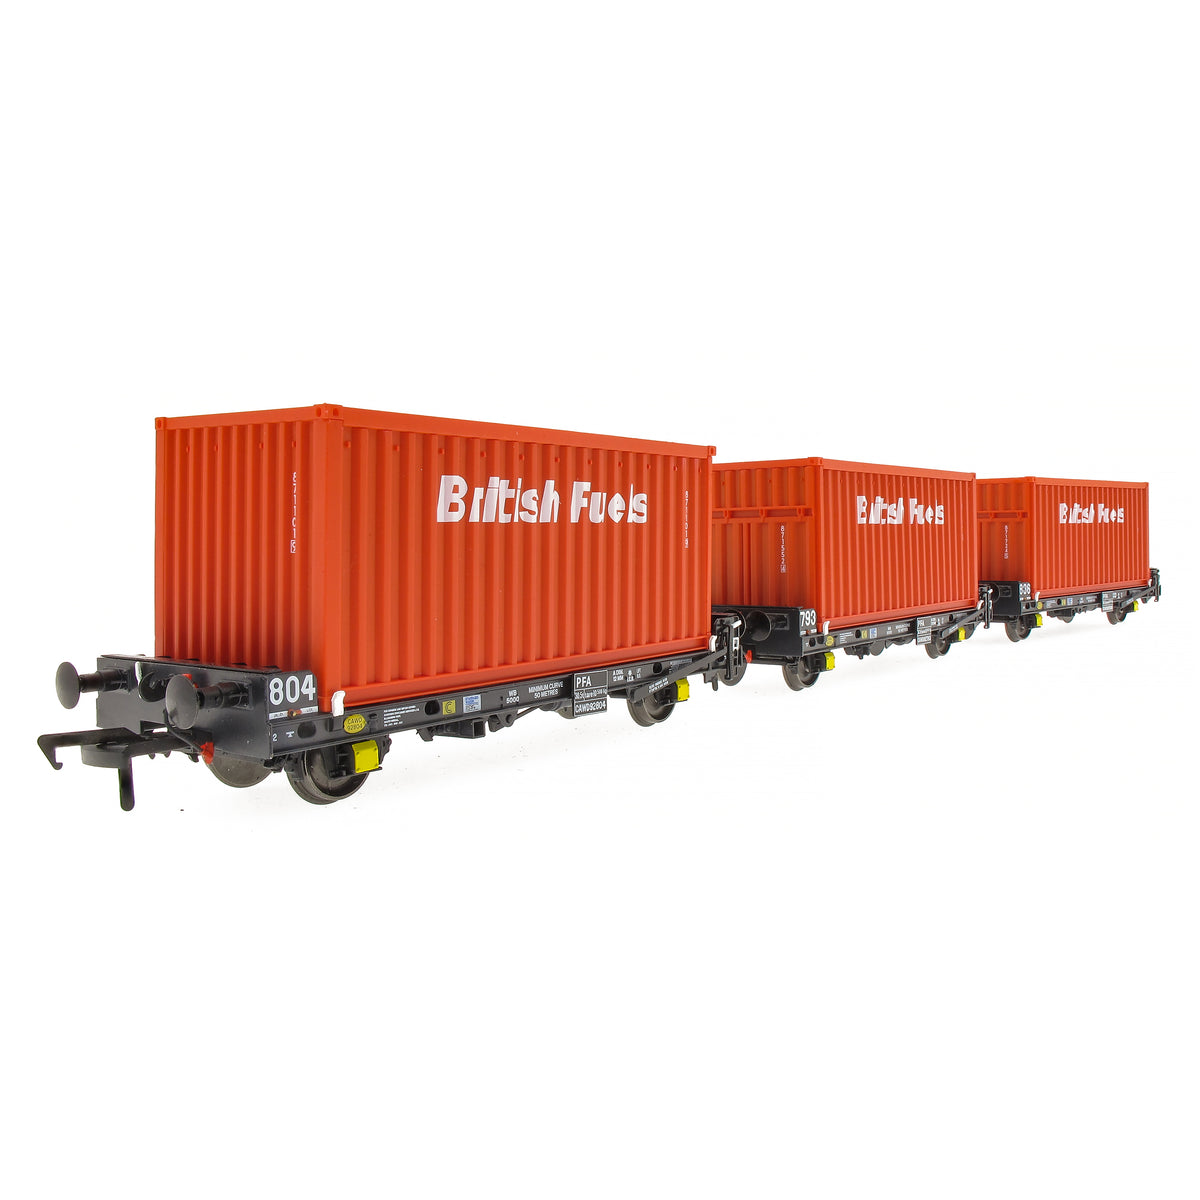 Accurascale OO Gauge ACC2066-BFL-F PF012A PFA Container Flat Wagon, British Fuels